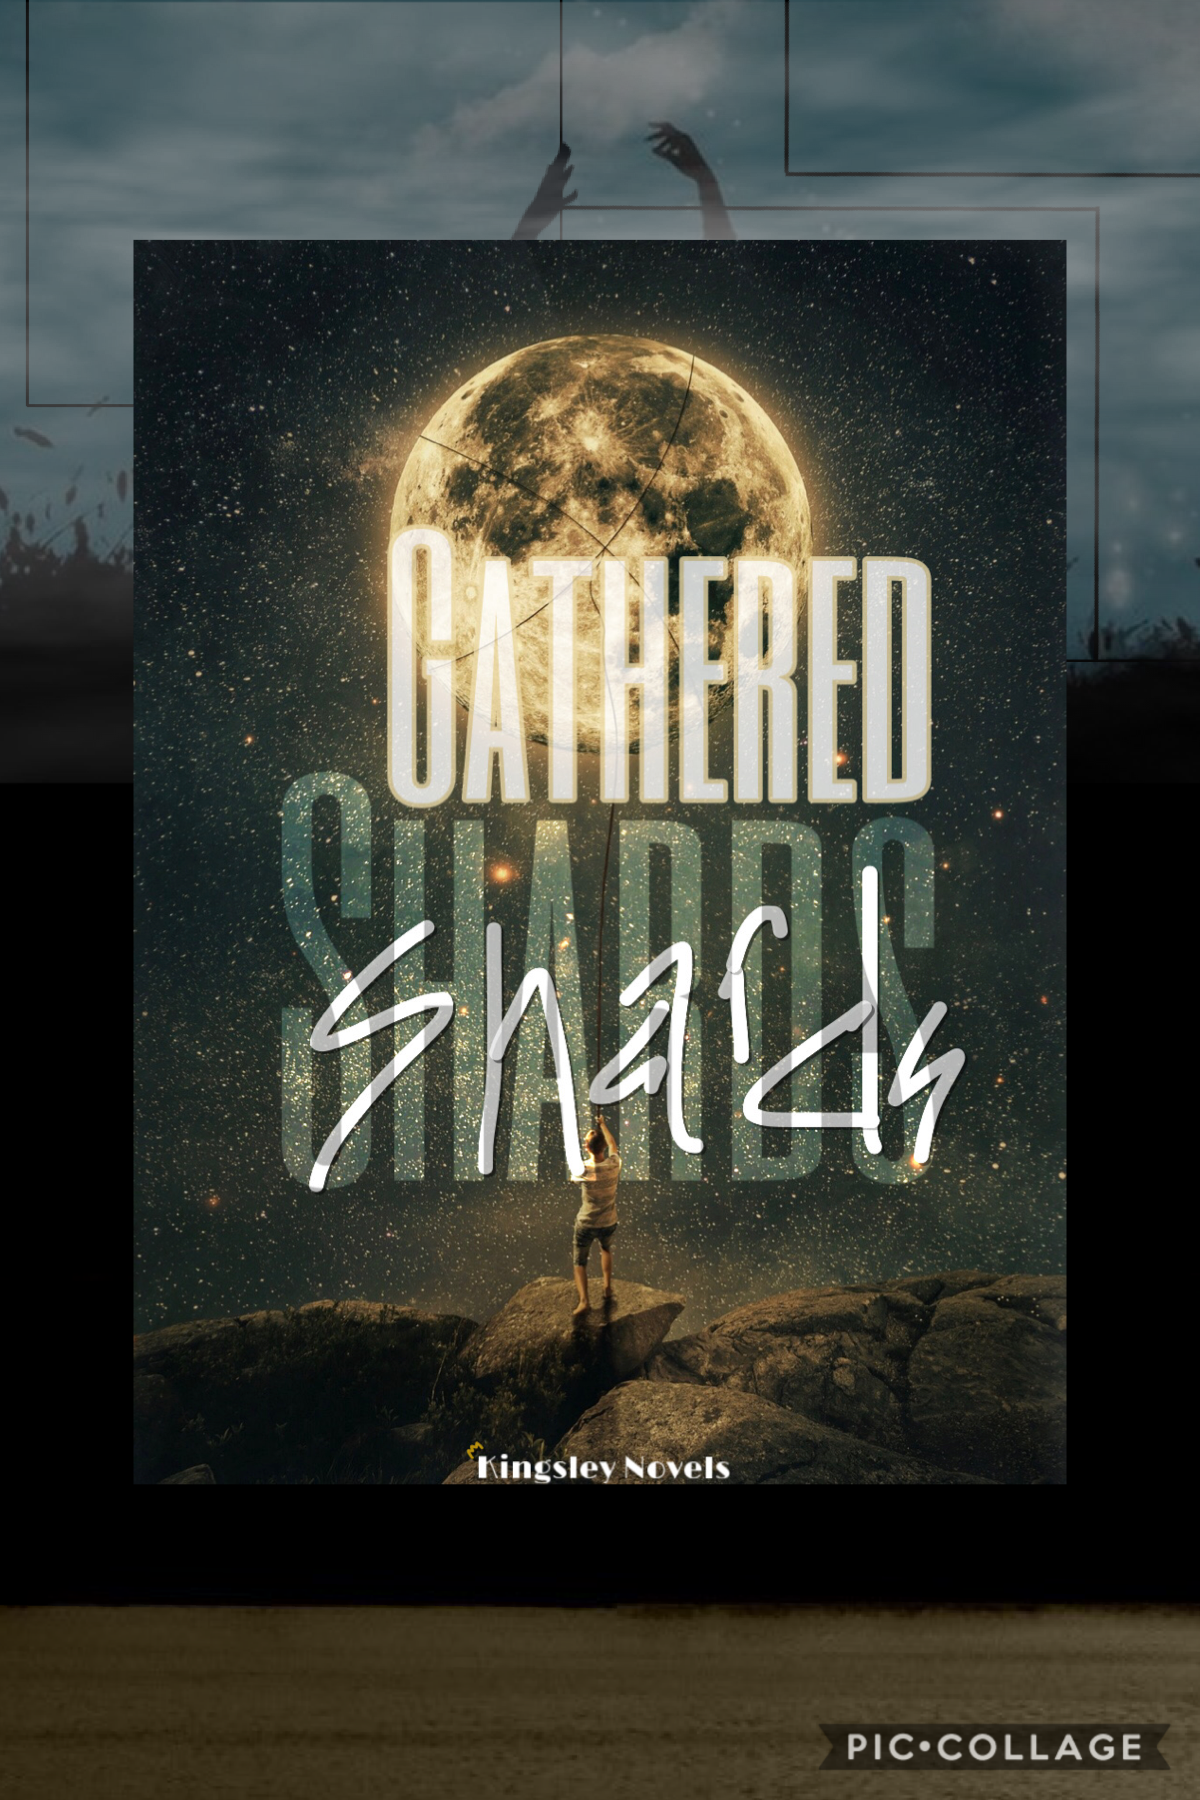 Find my new short story Gathered Shards on Wattpad @C10UD3DM1ND